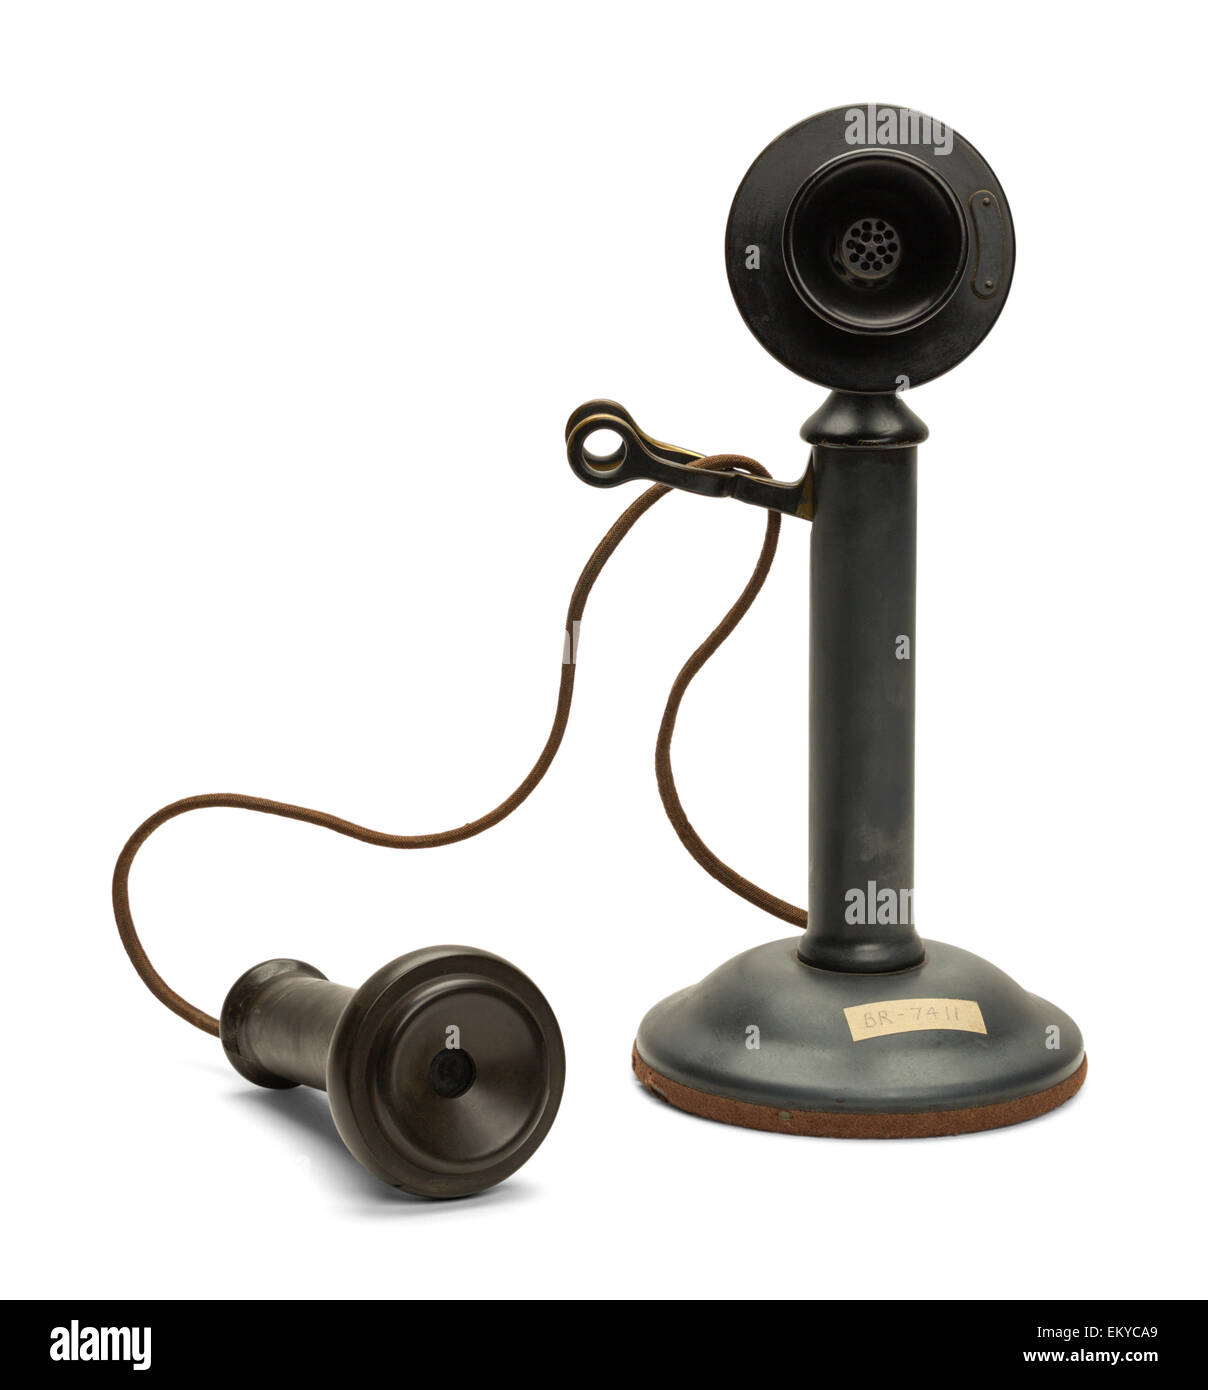 Antique Phone off the Hook Isolated on White Background. - Stock Image